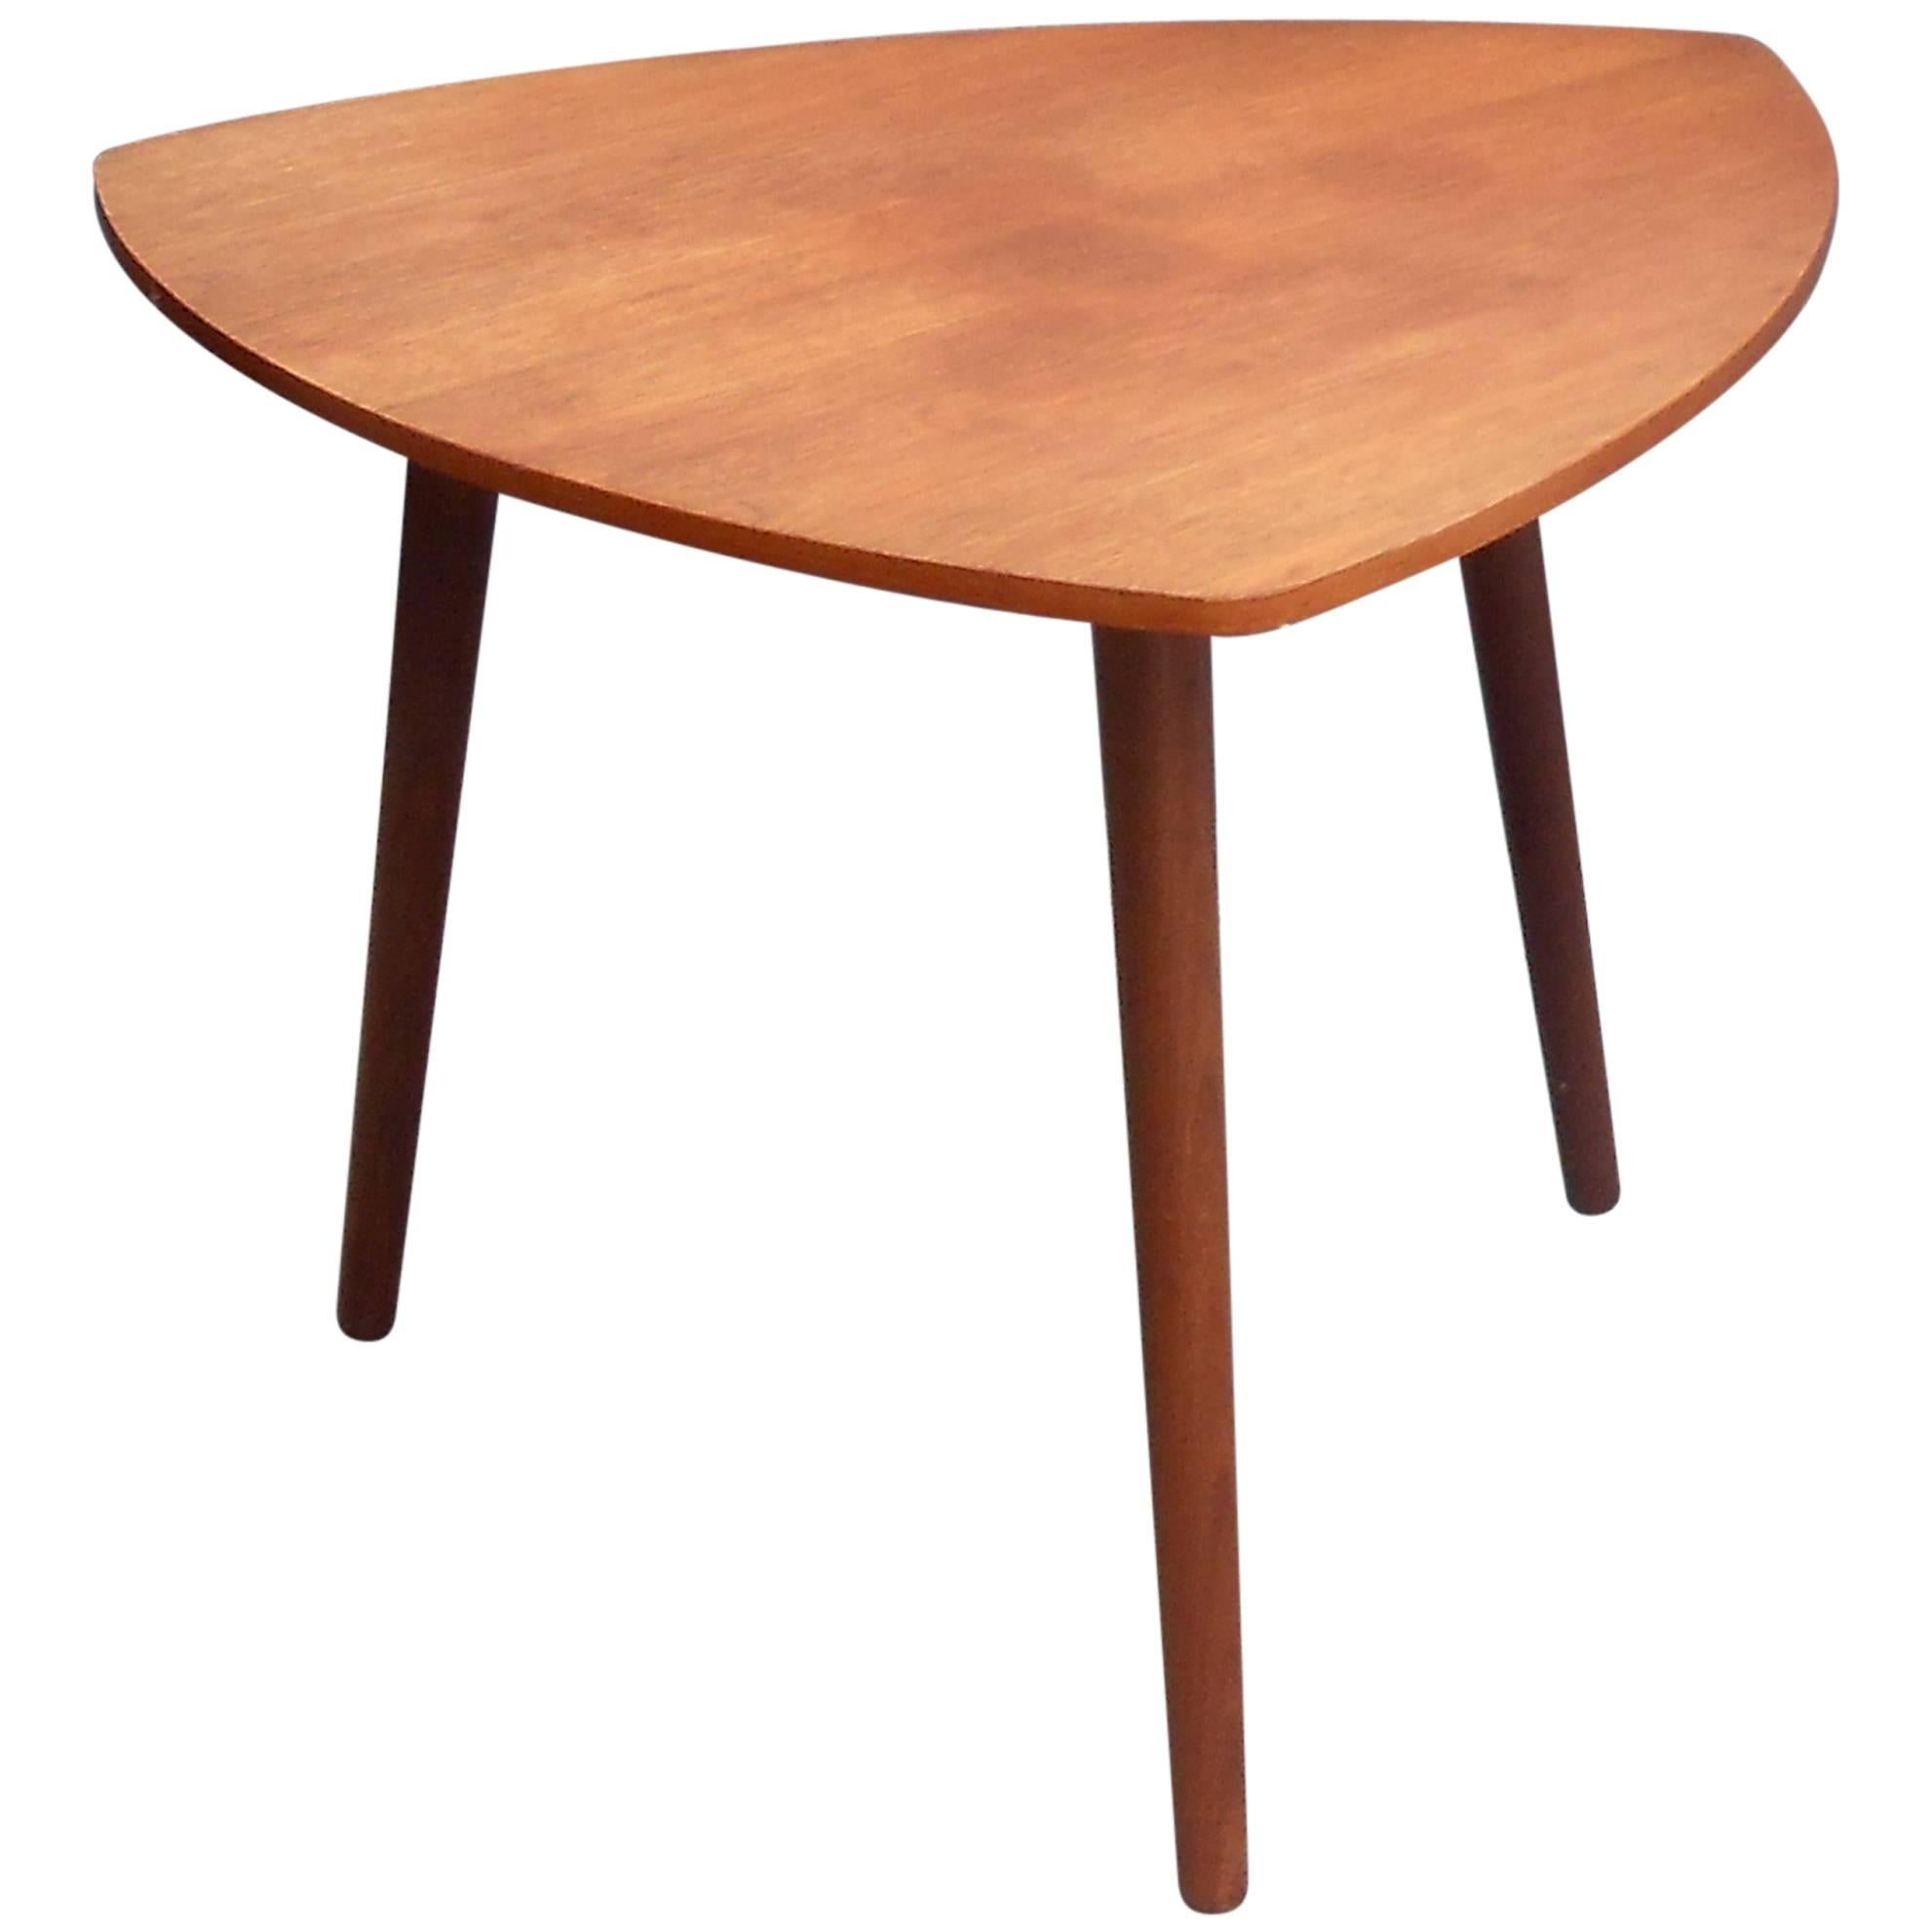 Danish Mid Century Triangular Guitar Pick Shaped Teak Coffee Table Circa 1960